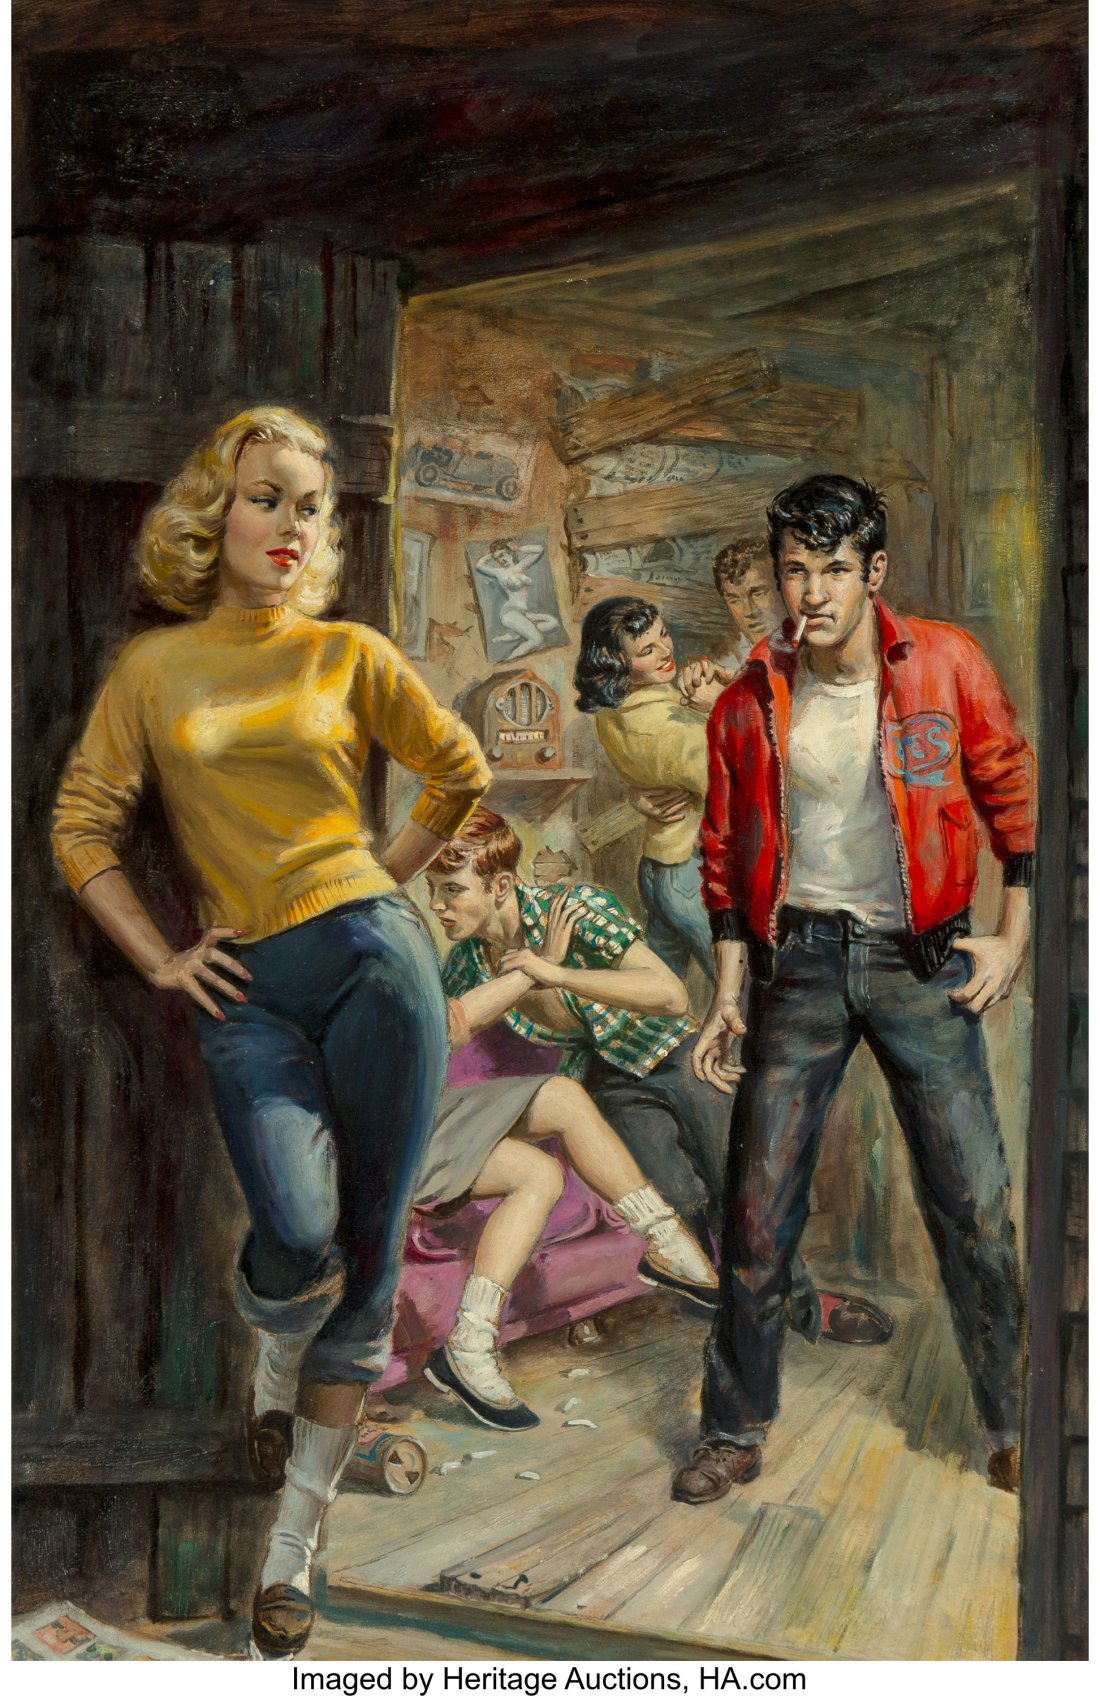 The cover art for the 1958 pulp novel D for Delinquent shows a nubile blonde in jeans and a yellow sweater leaning against the doorway of a shack. Inside, a tough-looking teen with greased black hair and a cigarette dangling from his mouth locks eyes with her.  Behind him, two couples grapple.